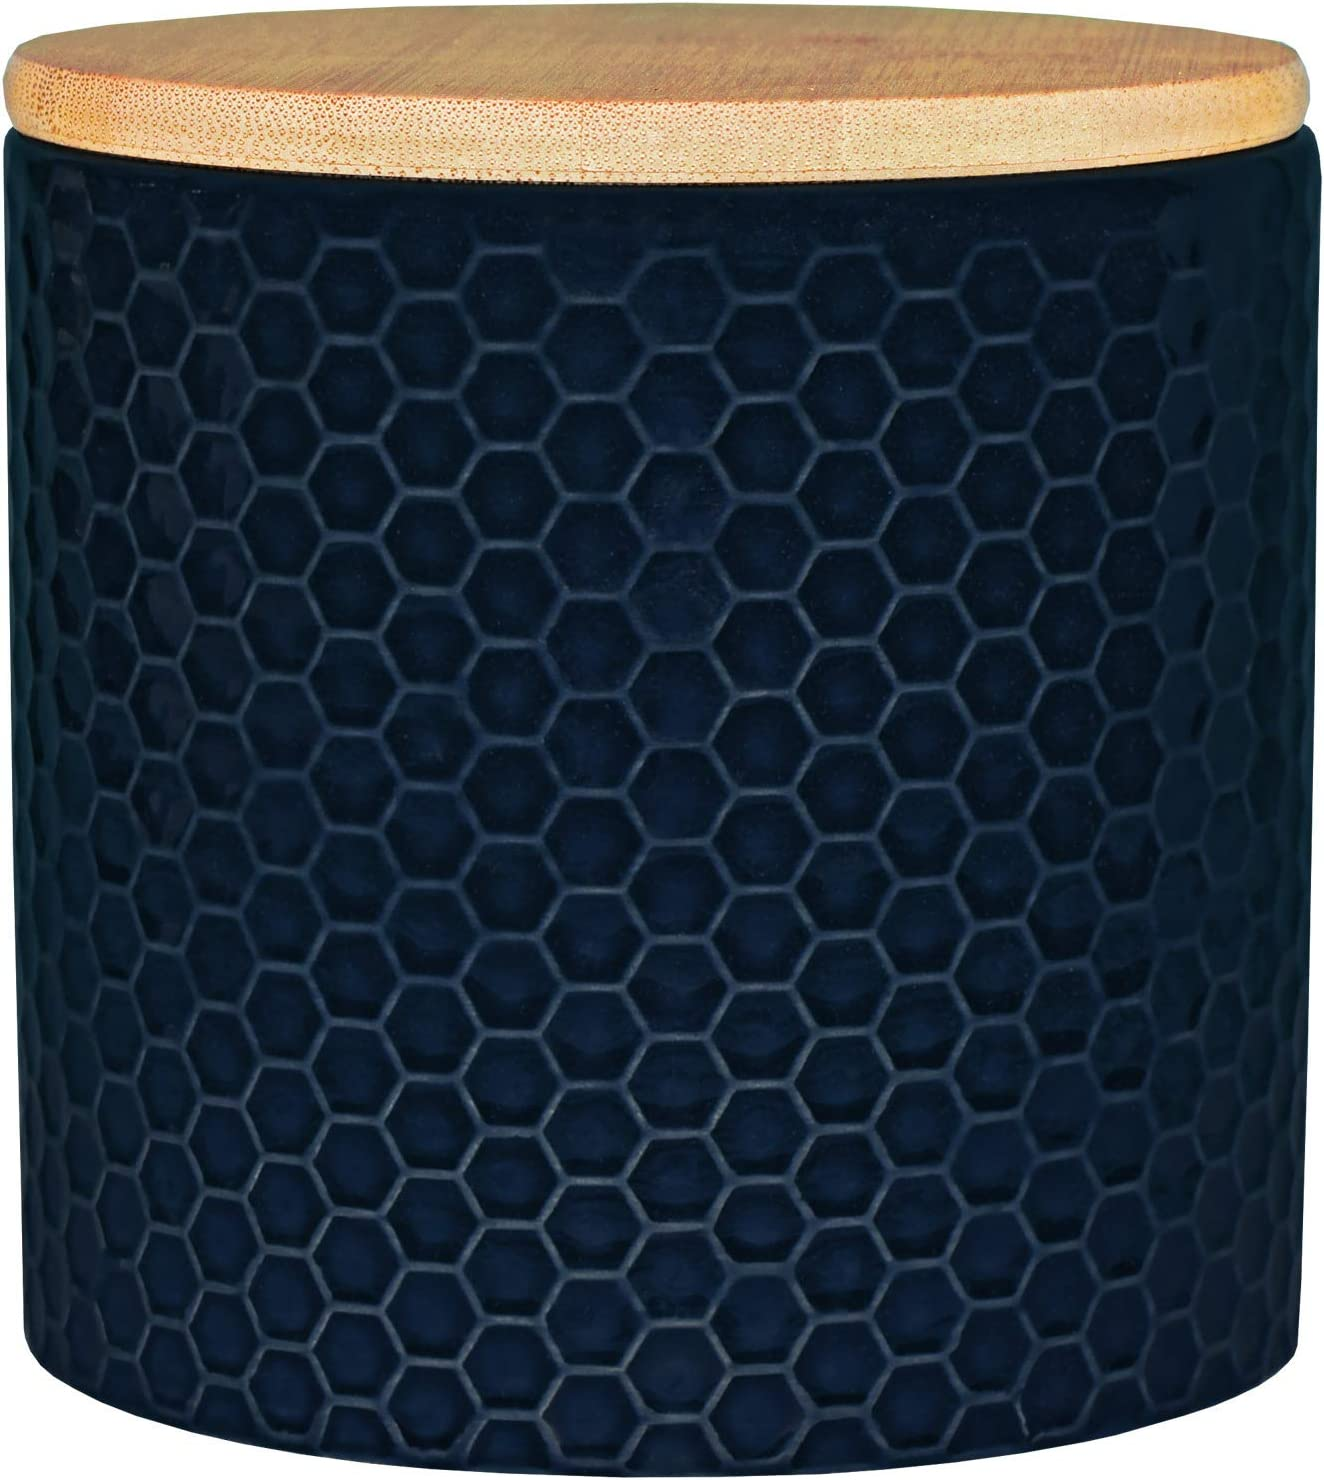 Blue Donuts 33 Oz Ceramic Airtight Jar,Ceramic Airtight Food Storage Containers,Ceramic Kitchen Canisters, 975 ML Airtight Jar, Flour Jar with Lid,Airtight Food Storage Containers for Pantry,Navy Blue